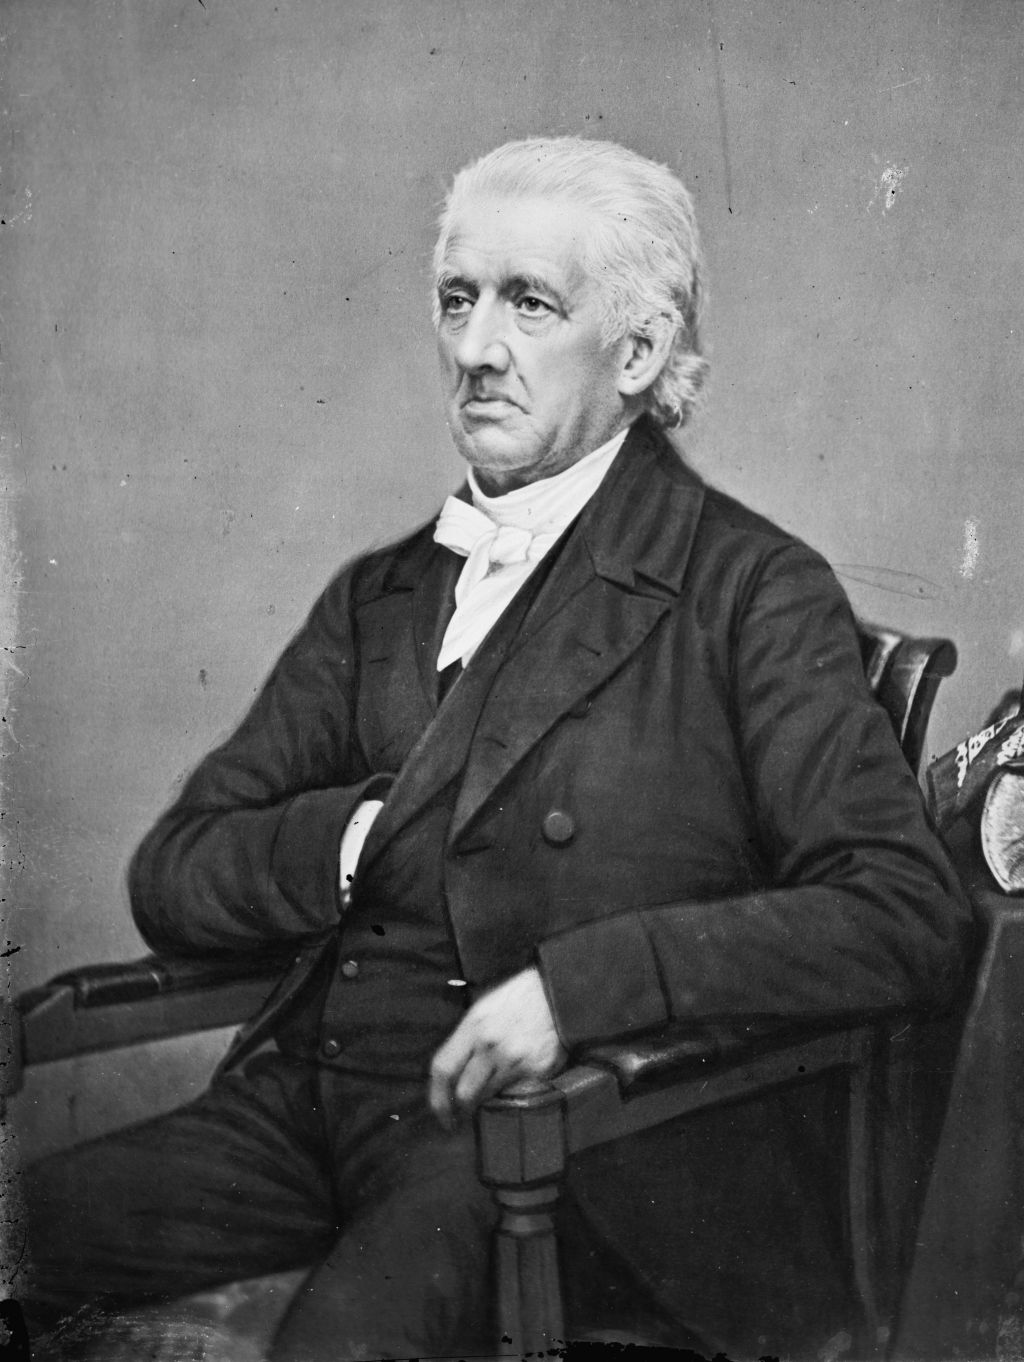 us reform movement lyman beechers message on intolerance essay Chapter 12: reform and conflict, 1828-1836  • the most long-lived and largest reform movement was the temperance movement  lyman beecher, six sermons on .